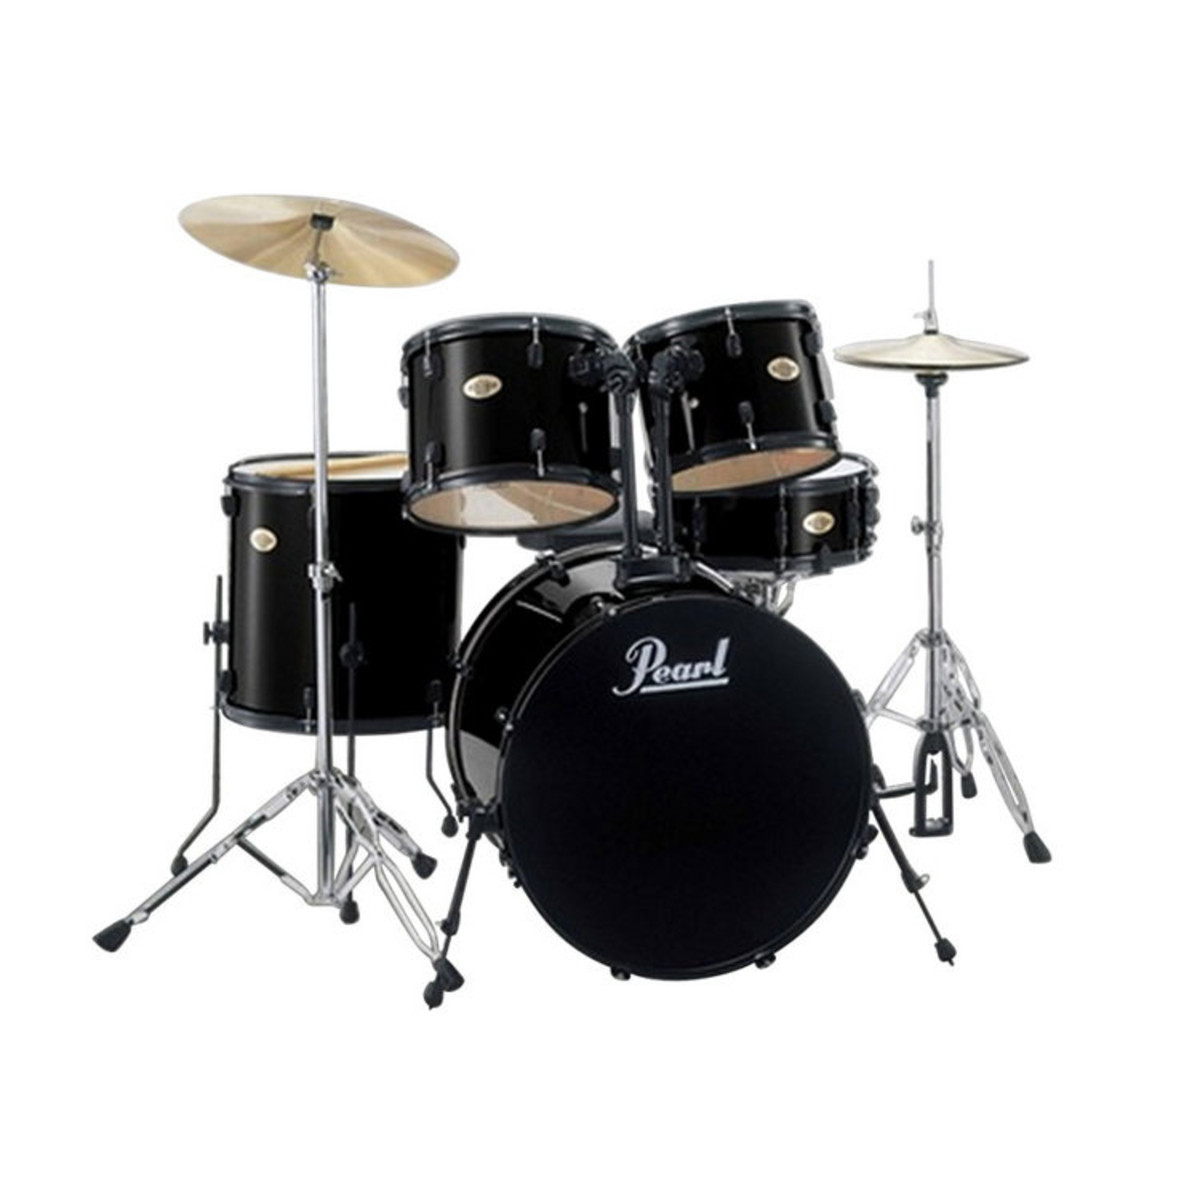 disc pearl target drum kit black with black hardware at. Black Bedroom Furniture Sets. Home Design Ideas